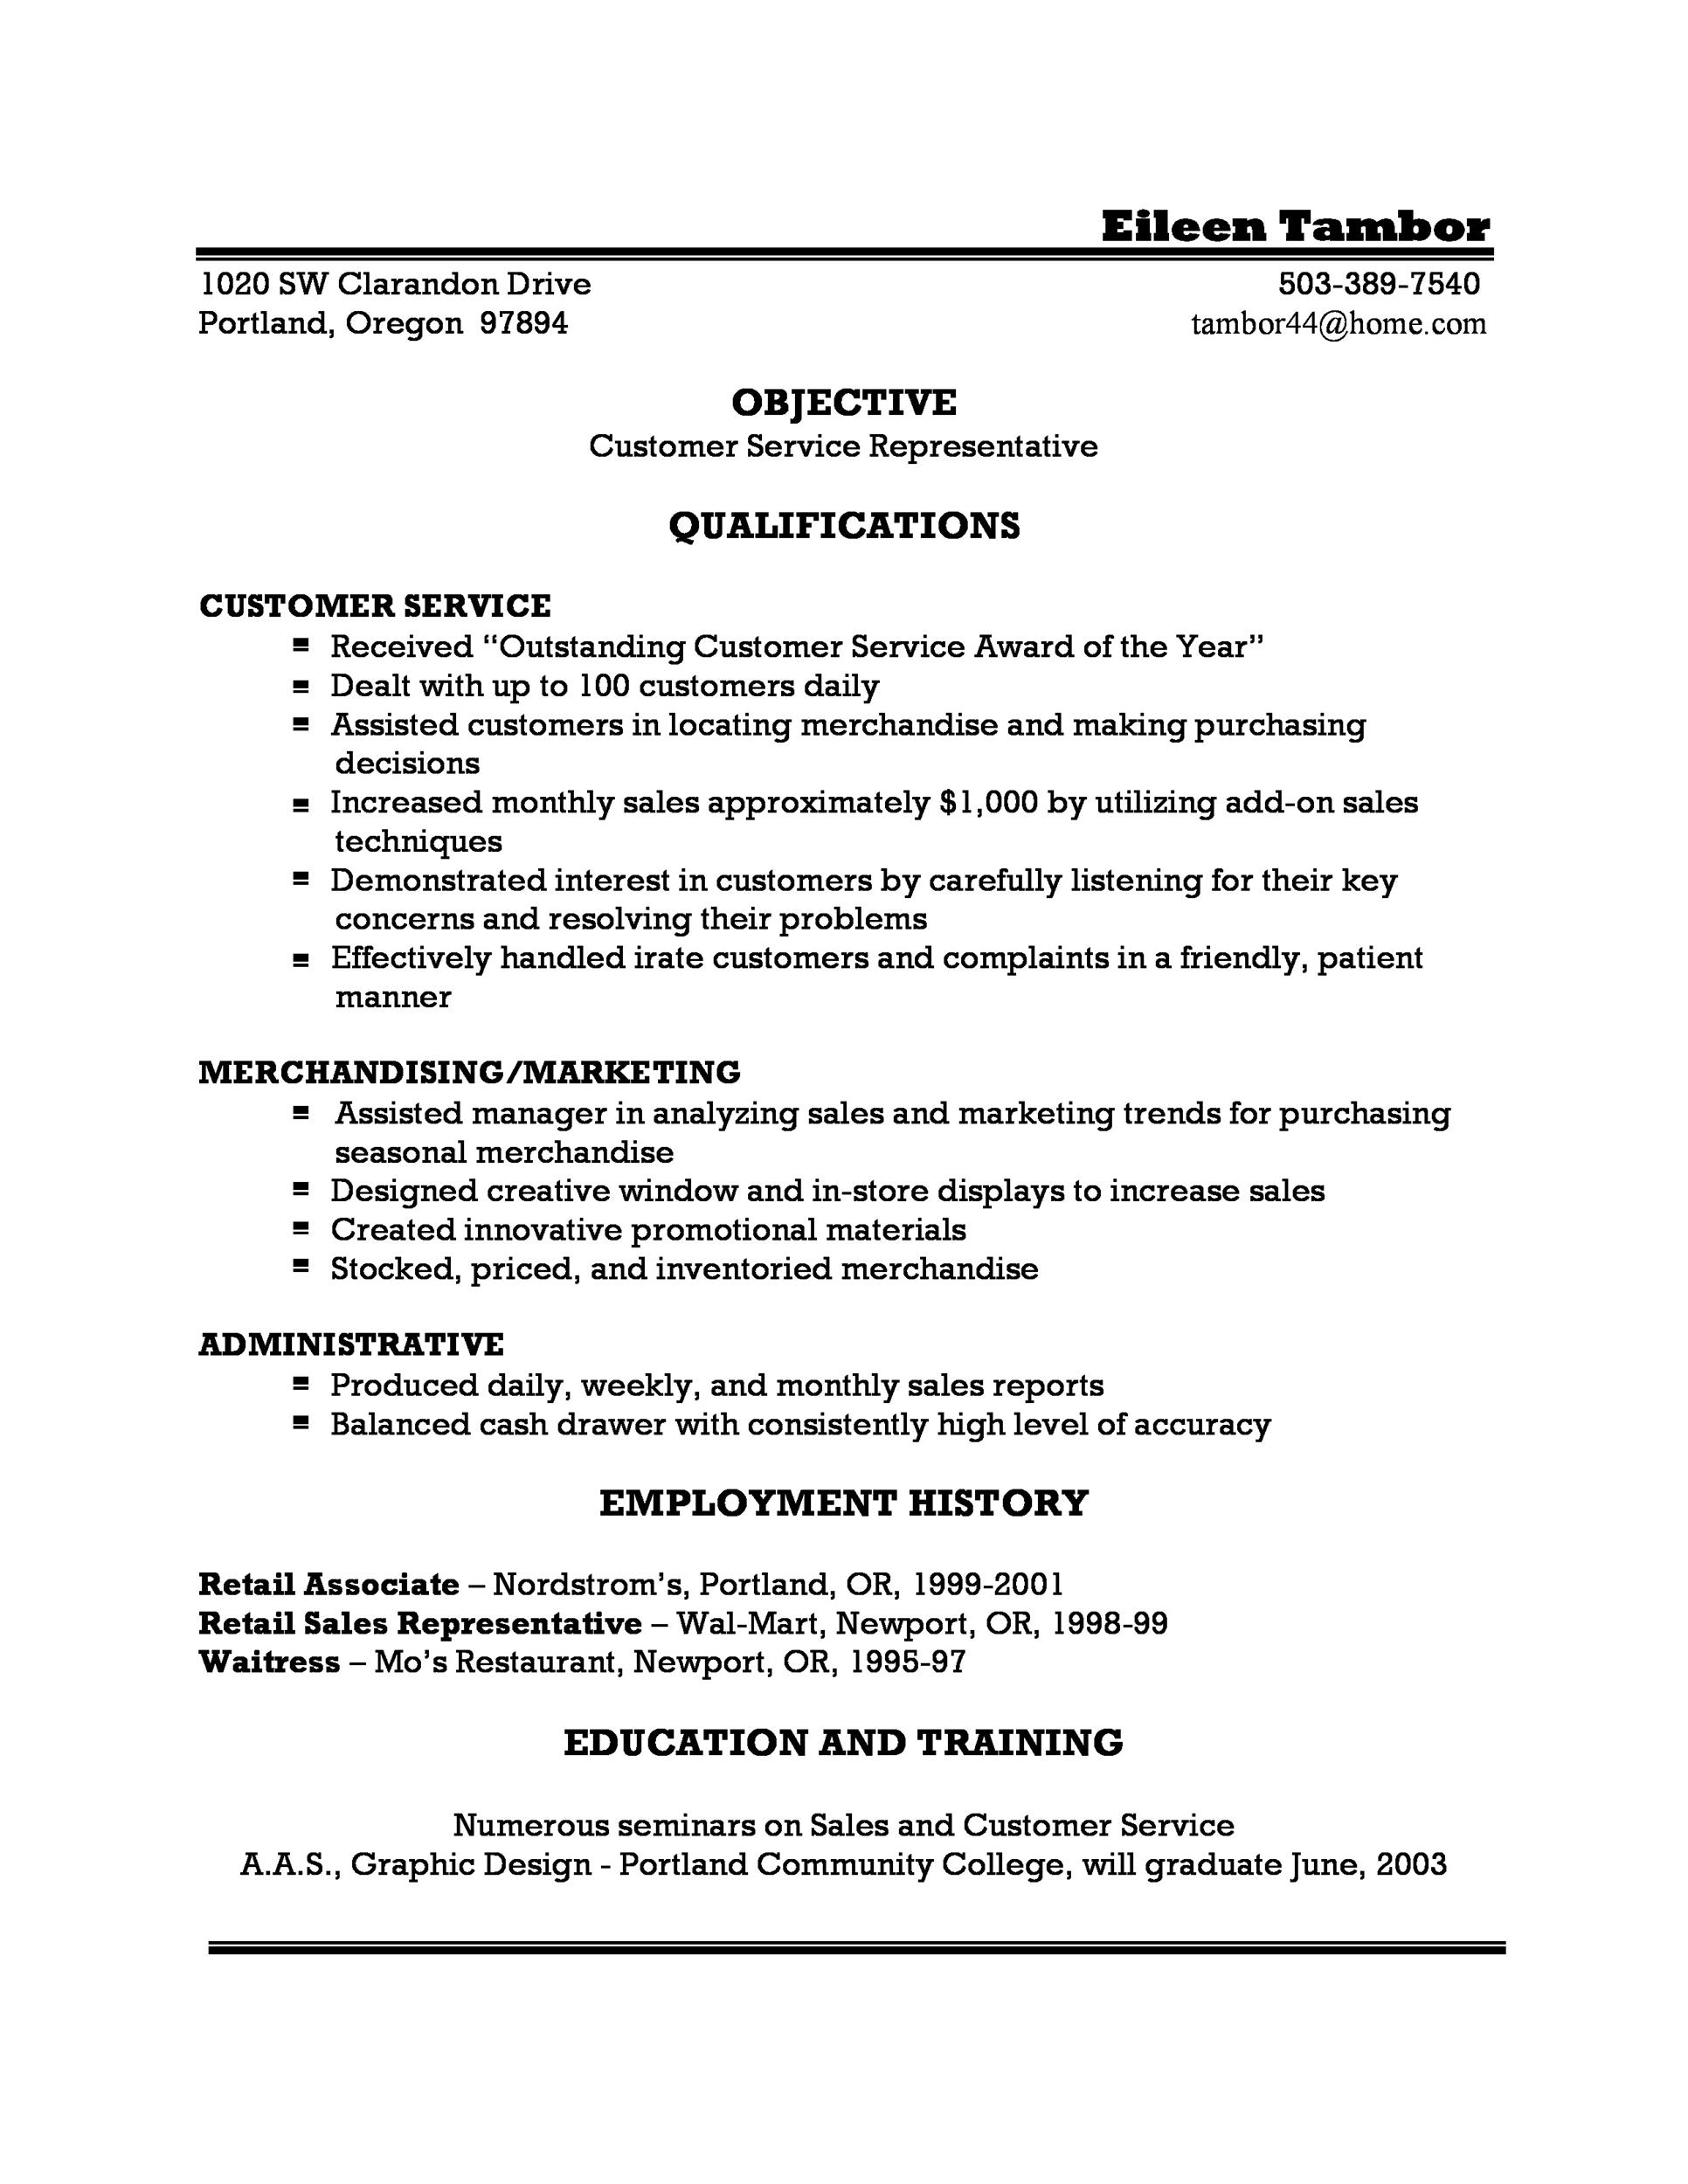 Customer Service Resume Template Free | Sample Resume And Free